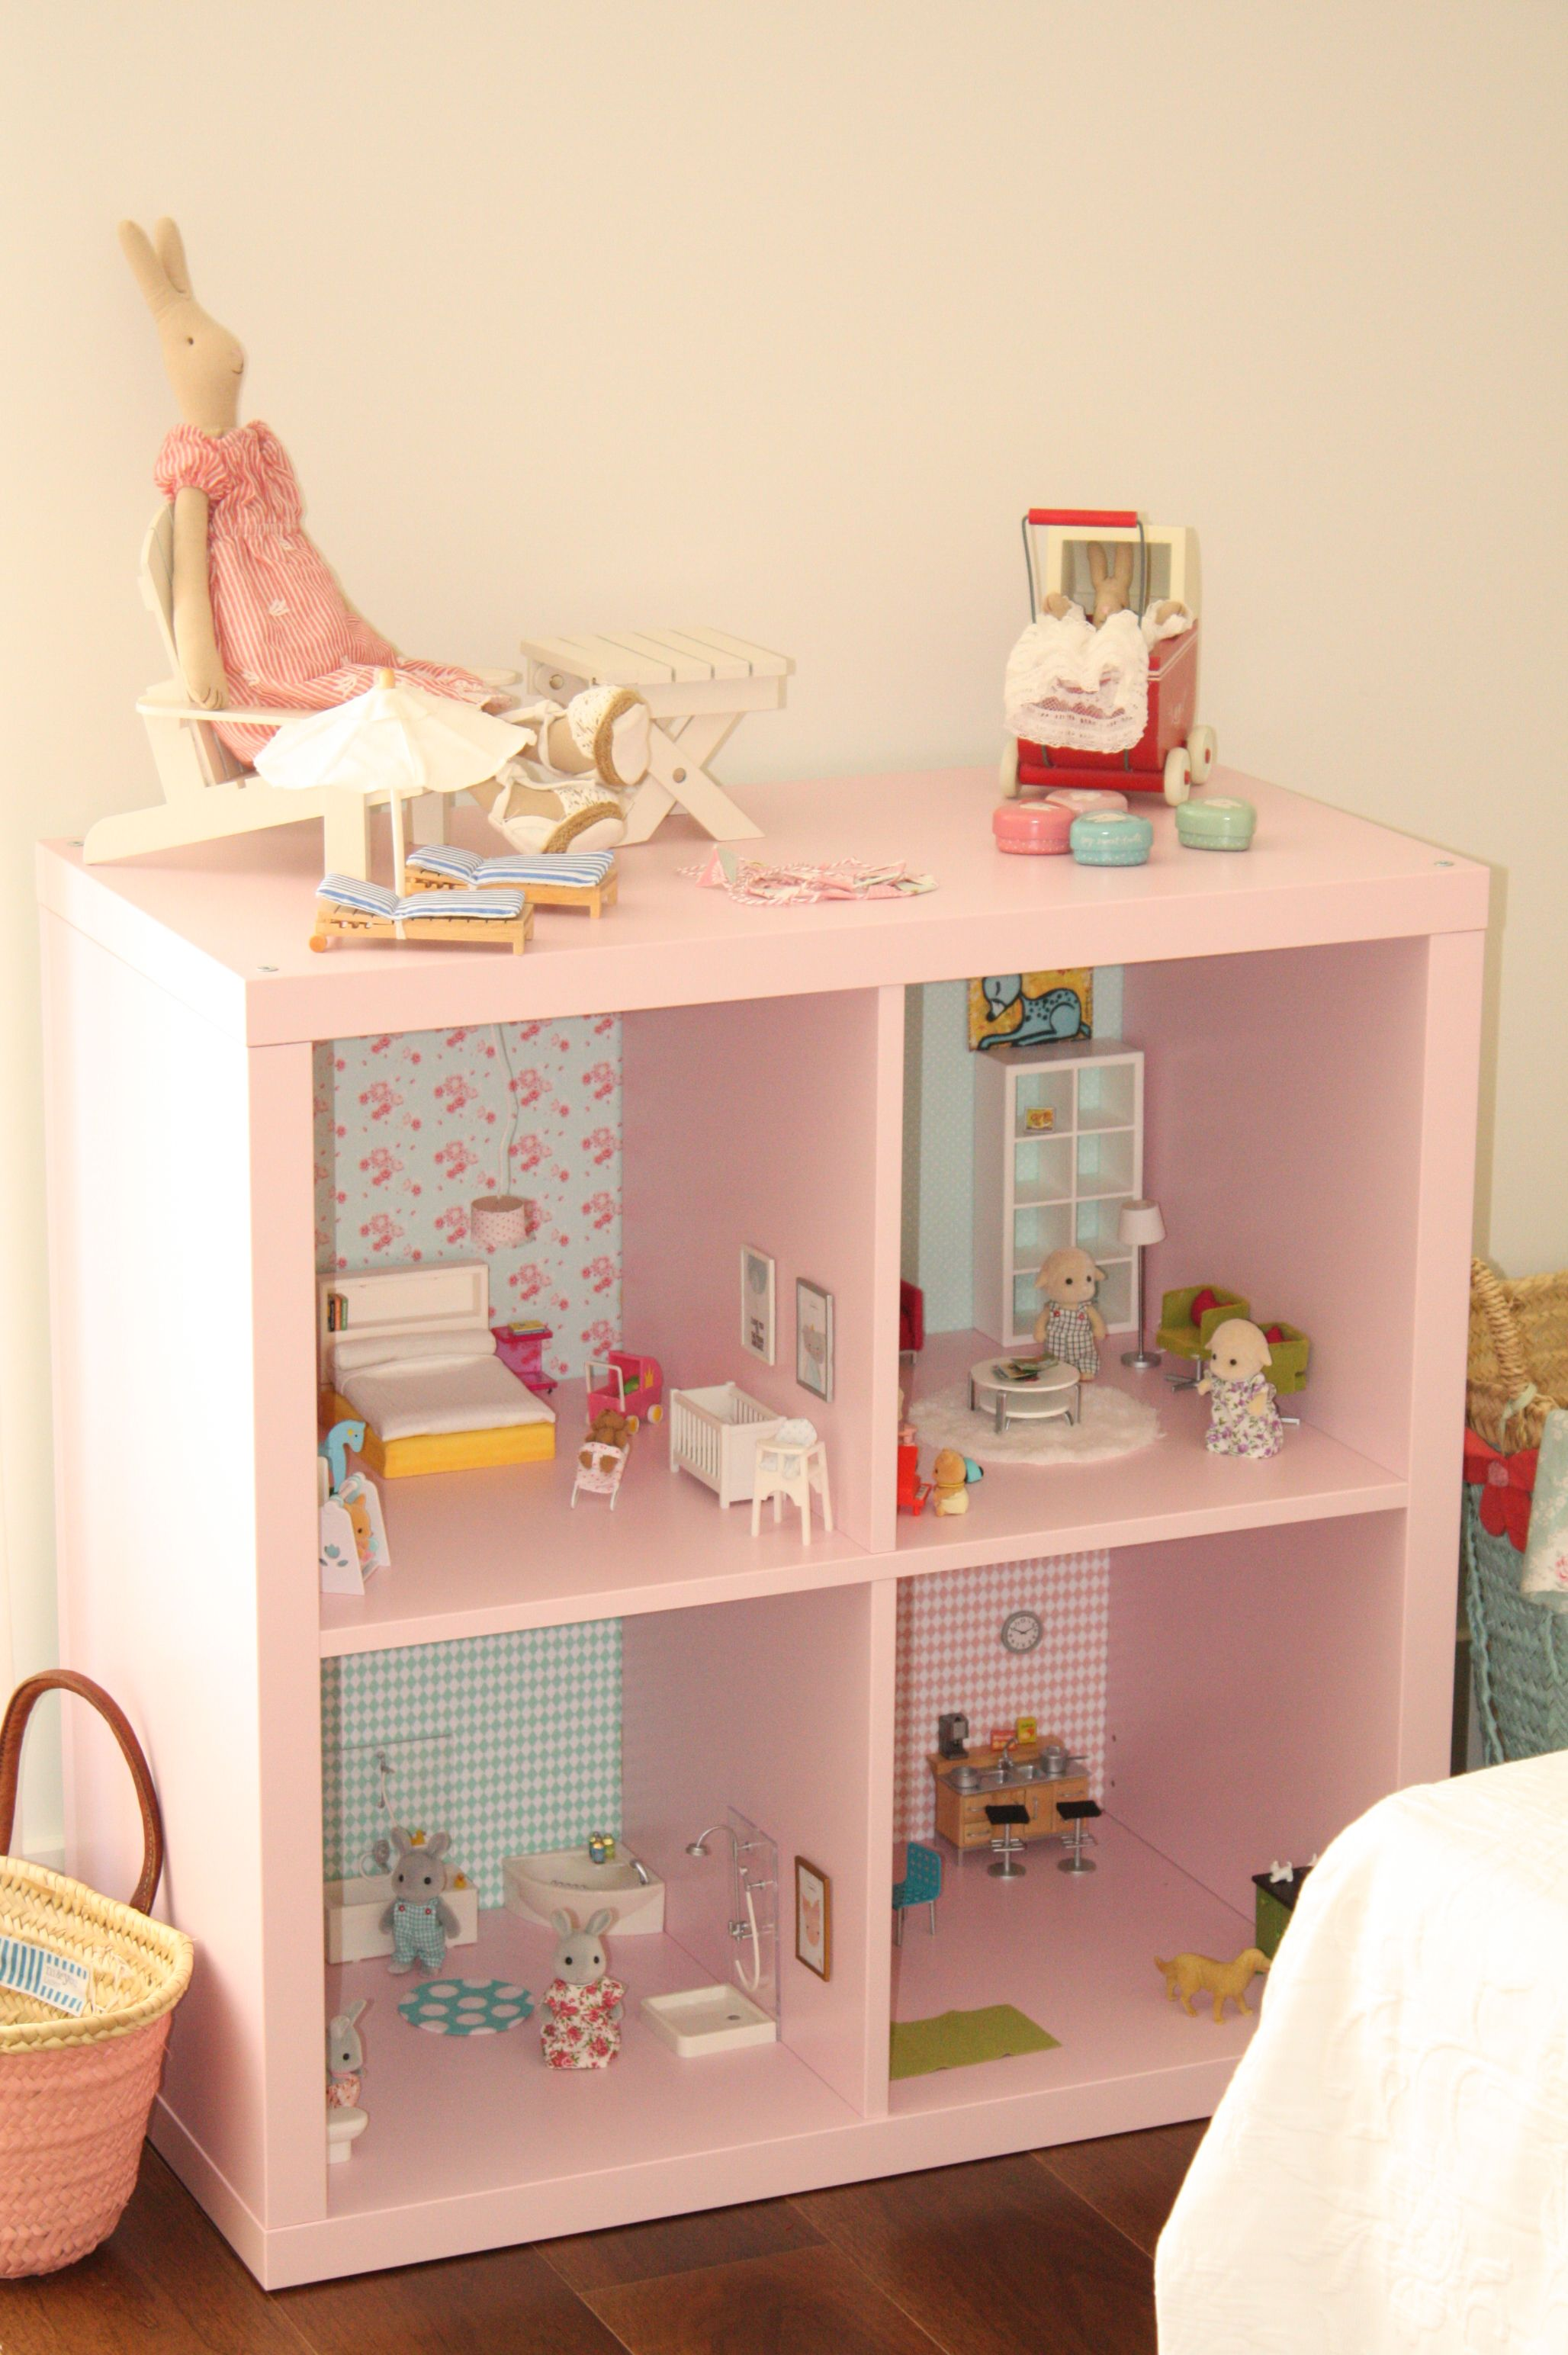 sylvanian families dollhouse ikea cube turning into a doll house day doll house diy spielzeug. Black Bedroom Furniture Sets. Home Design Ideas